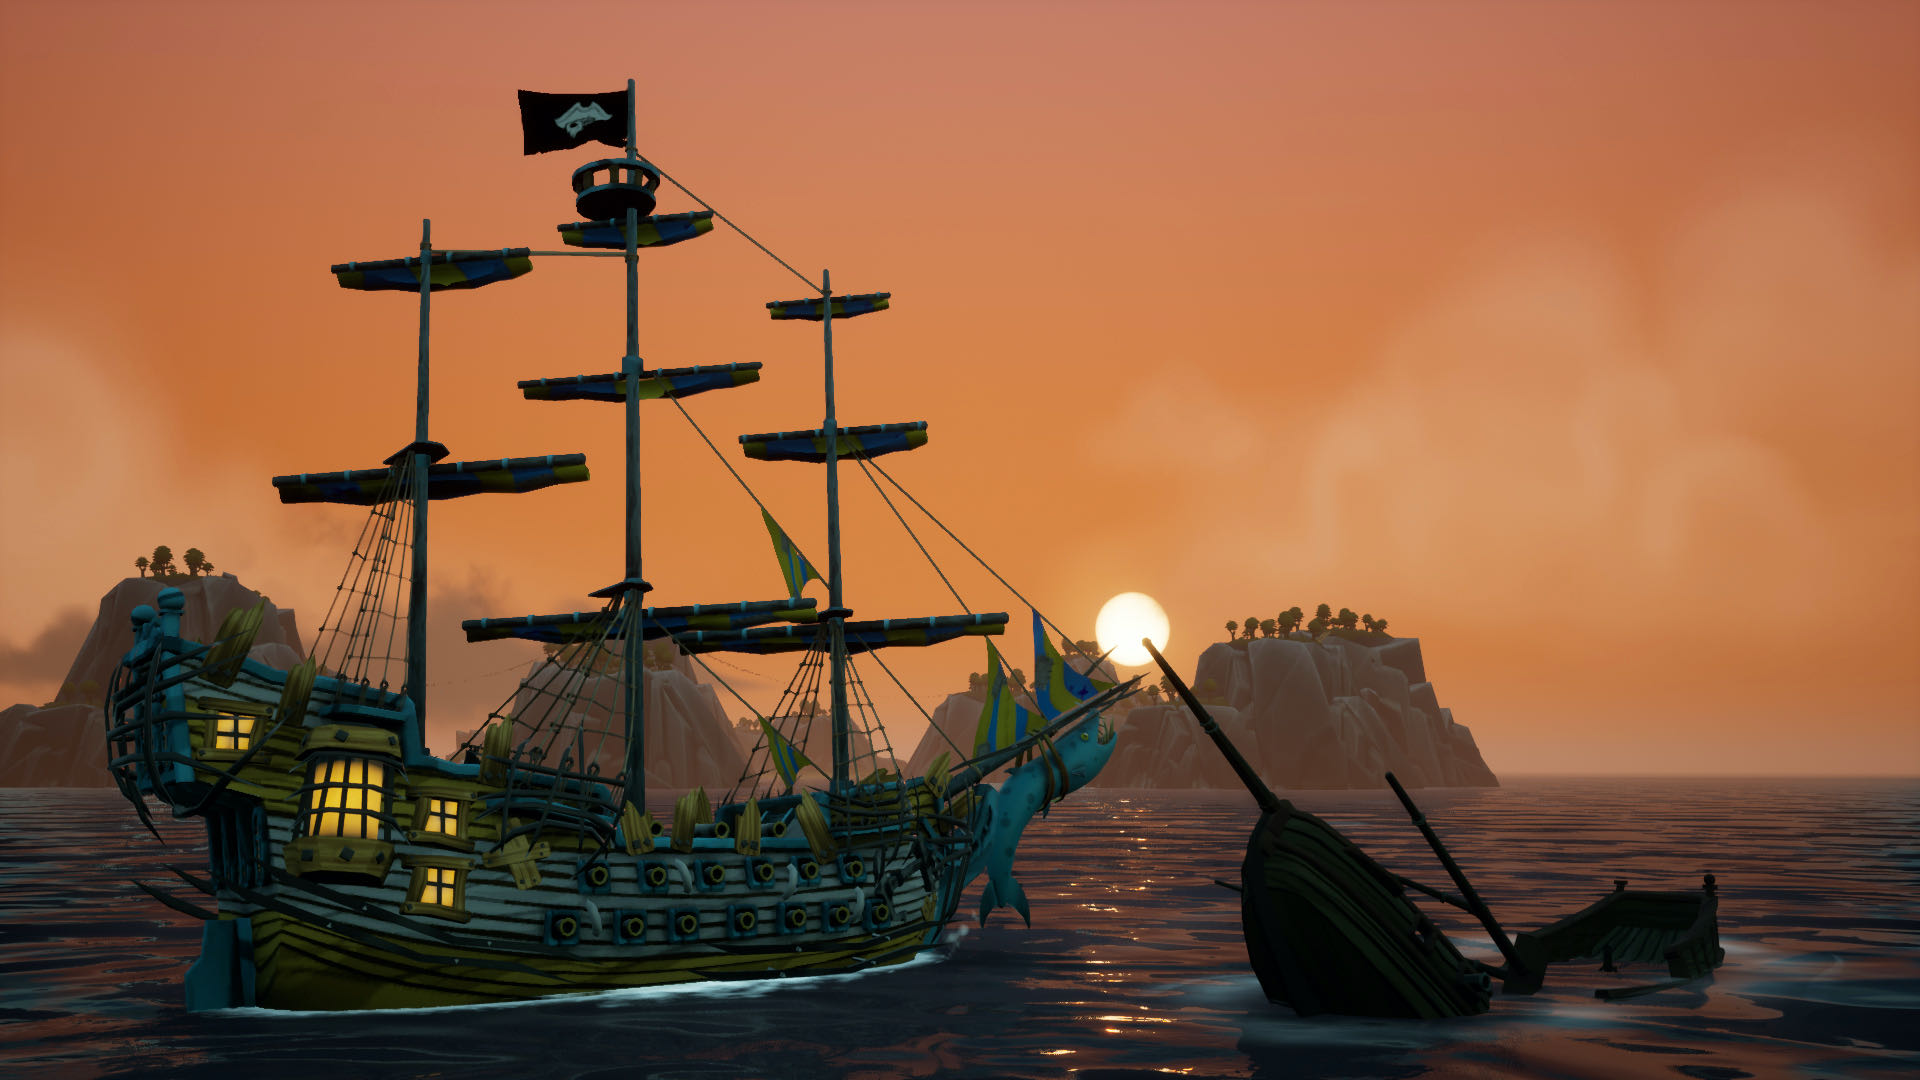 A screenshot from King of Seas, your ship passing a smaller wreck with the sun setting in the distance.